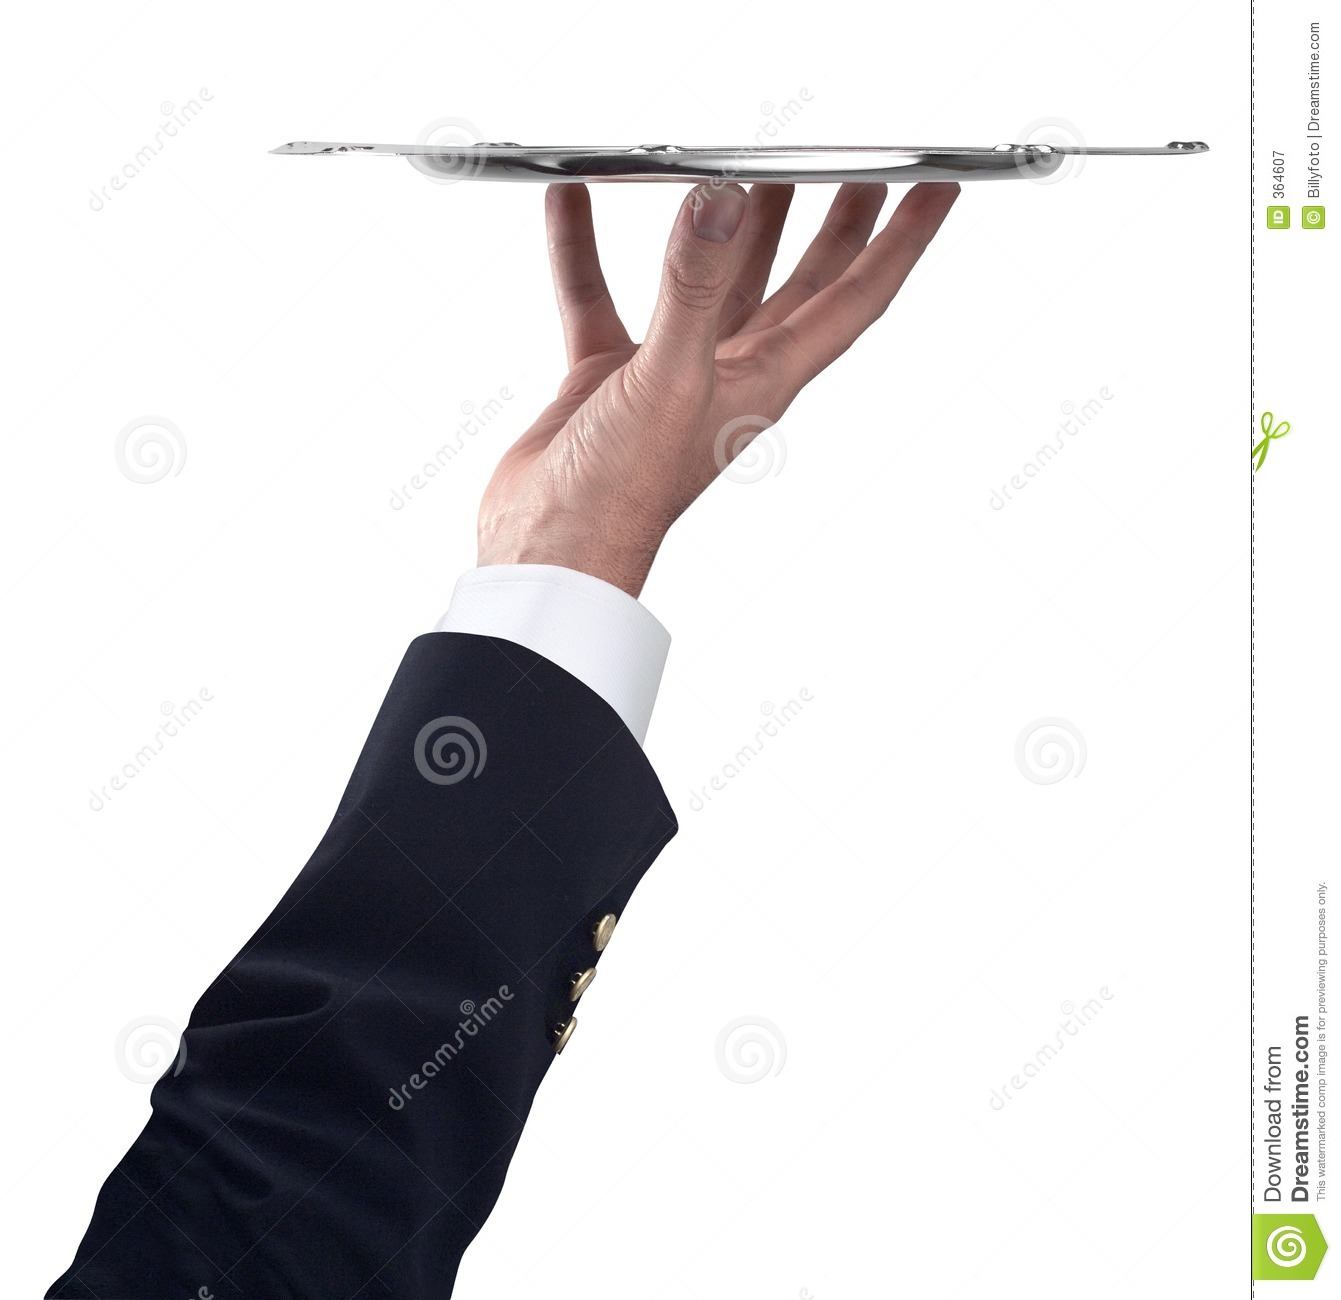 Silver tray with hand and arm royalty free stock photography image